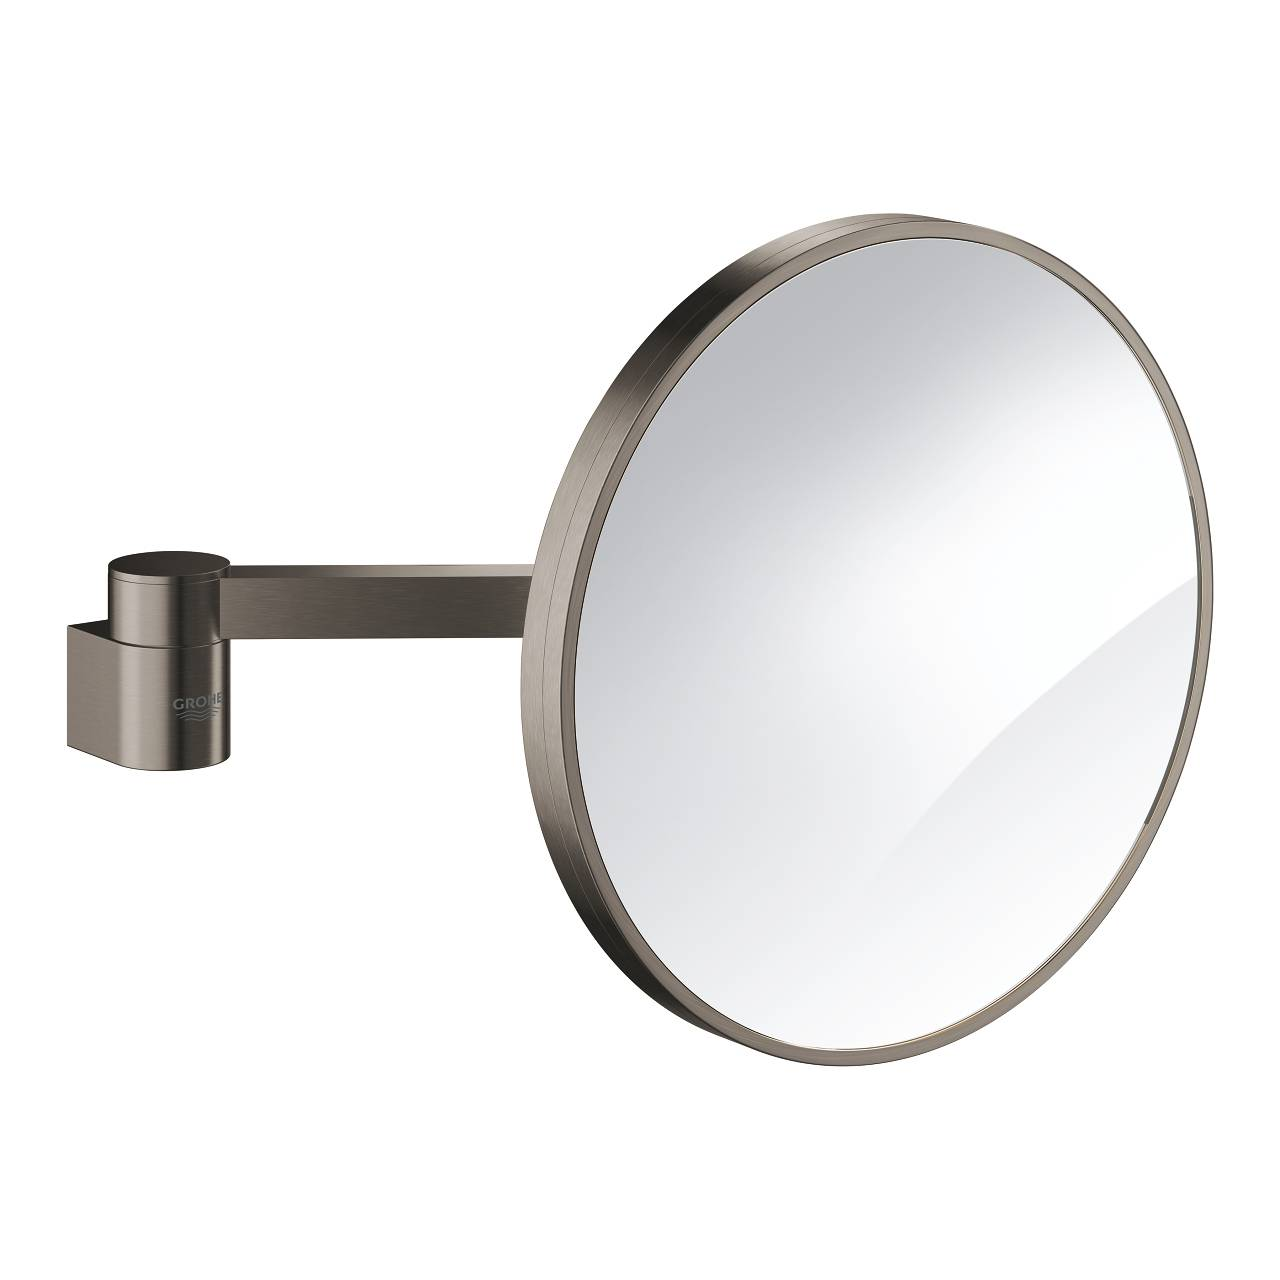 Grohe Selection - Miroir cosmétique mirrored / brushed hard graphite